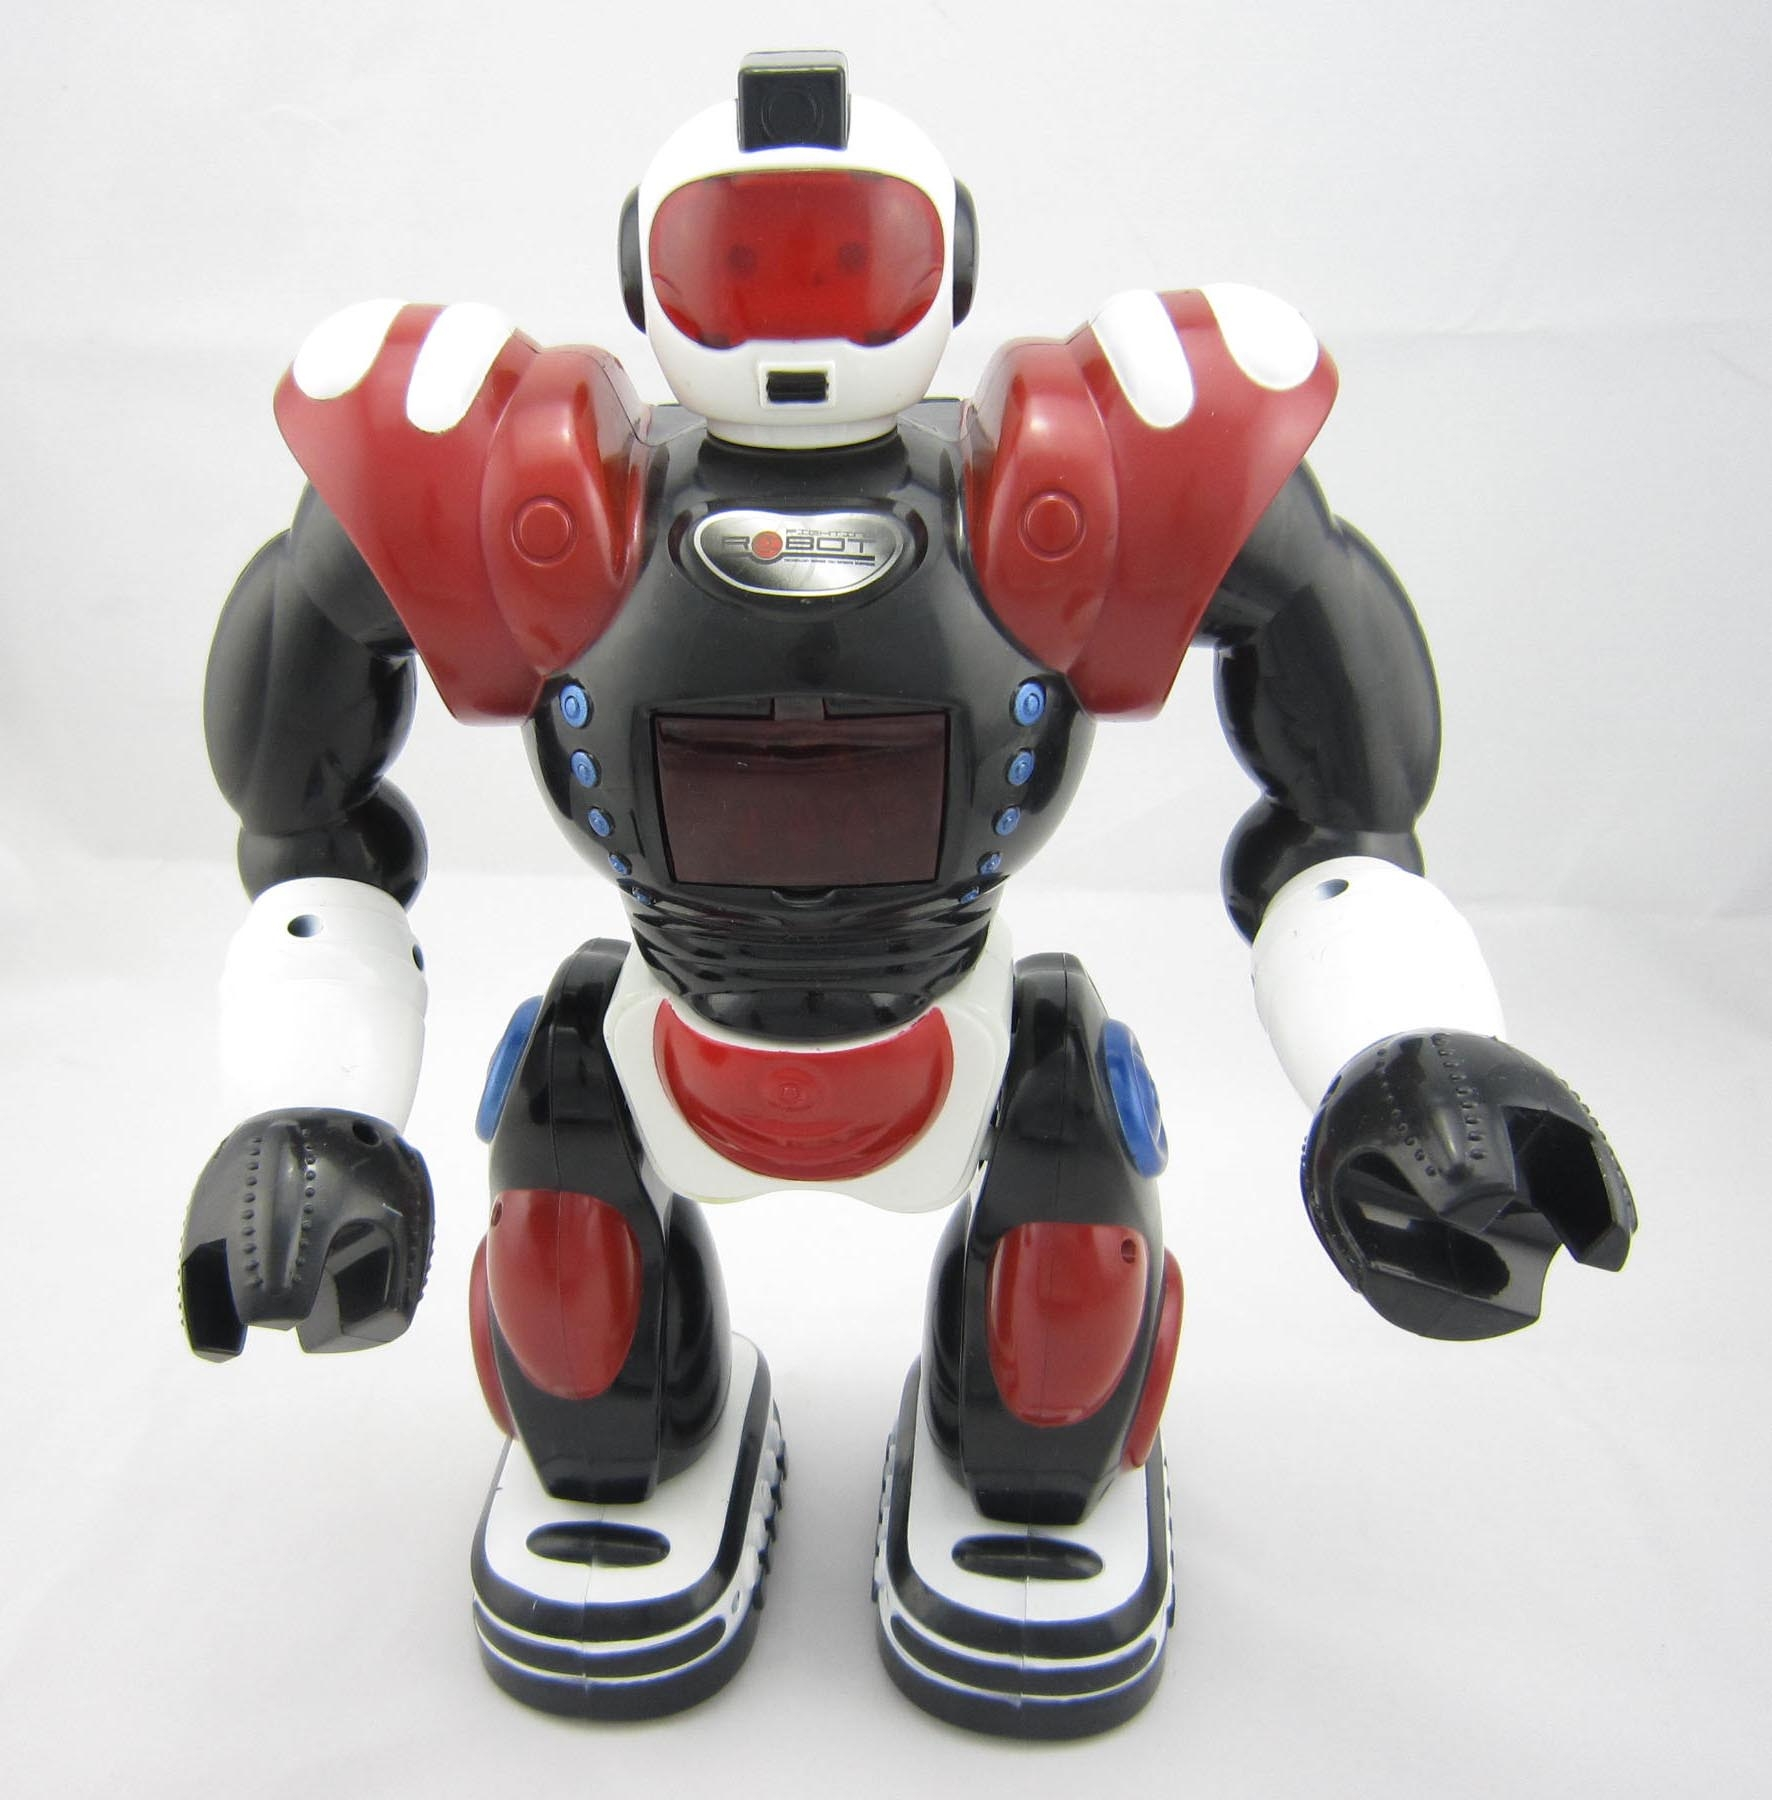 Cool Super Robot Man Toy SD SINGDA TOYS INDUSTRIAL